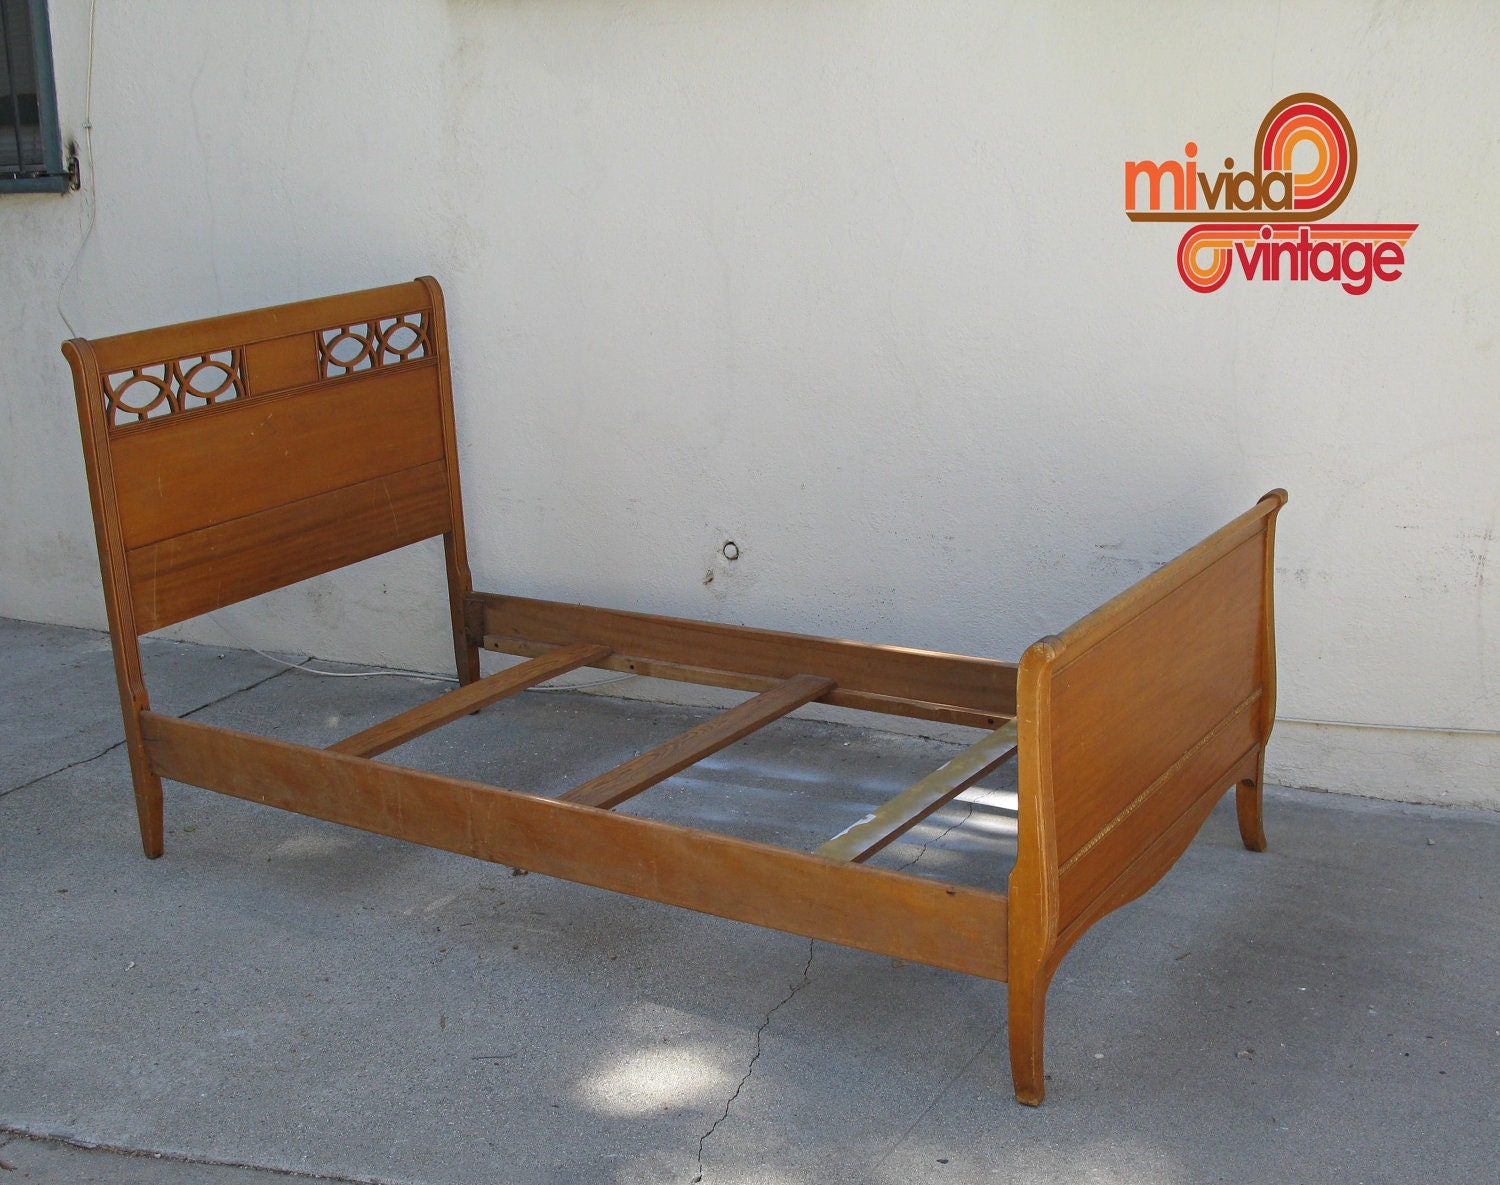 Vintage mid century modern wooden twin bed by mividavintagela for Cute twin bed frames